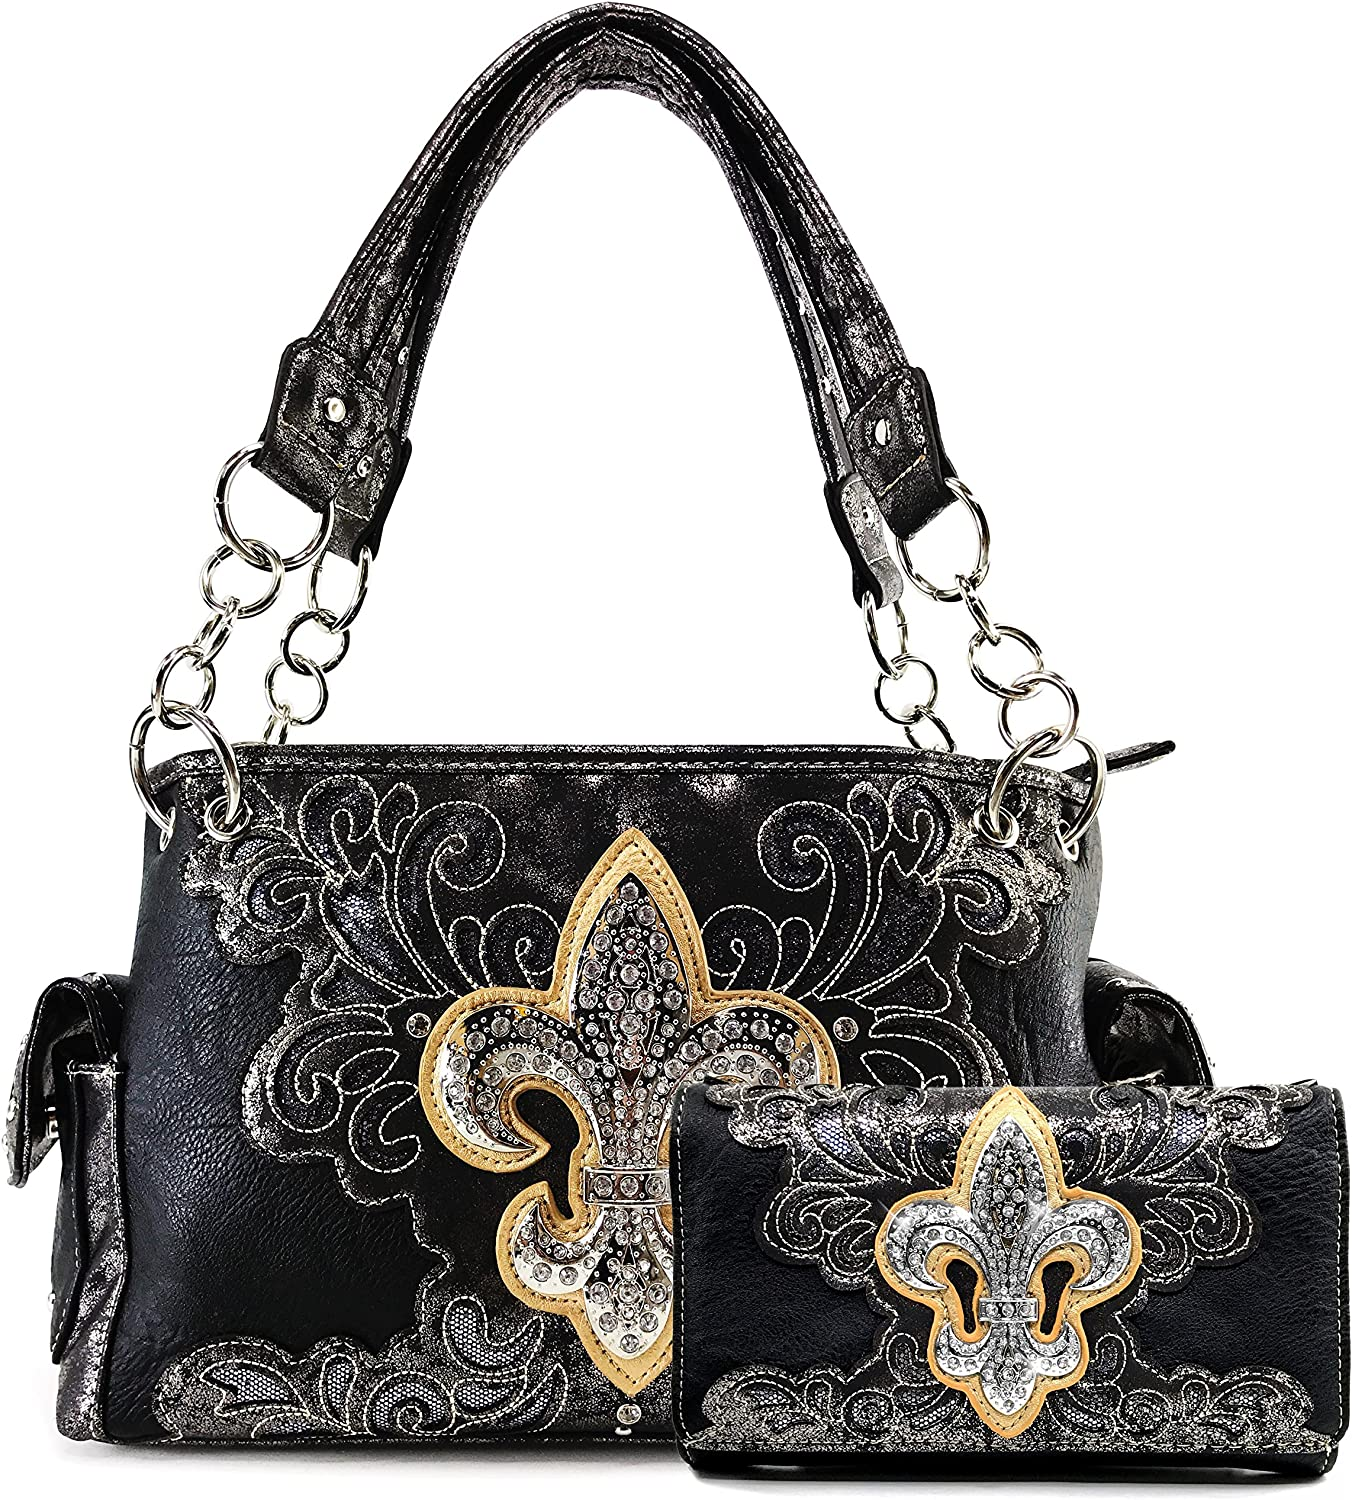 Justin West Western Fleur De Don't miss the campaign Lis Cut Recommended Co Glitter Rhinestone Laser